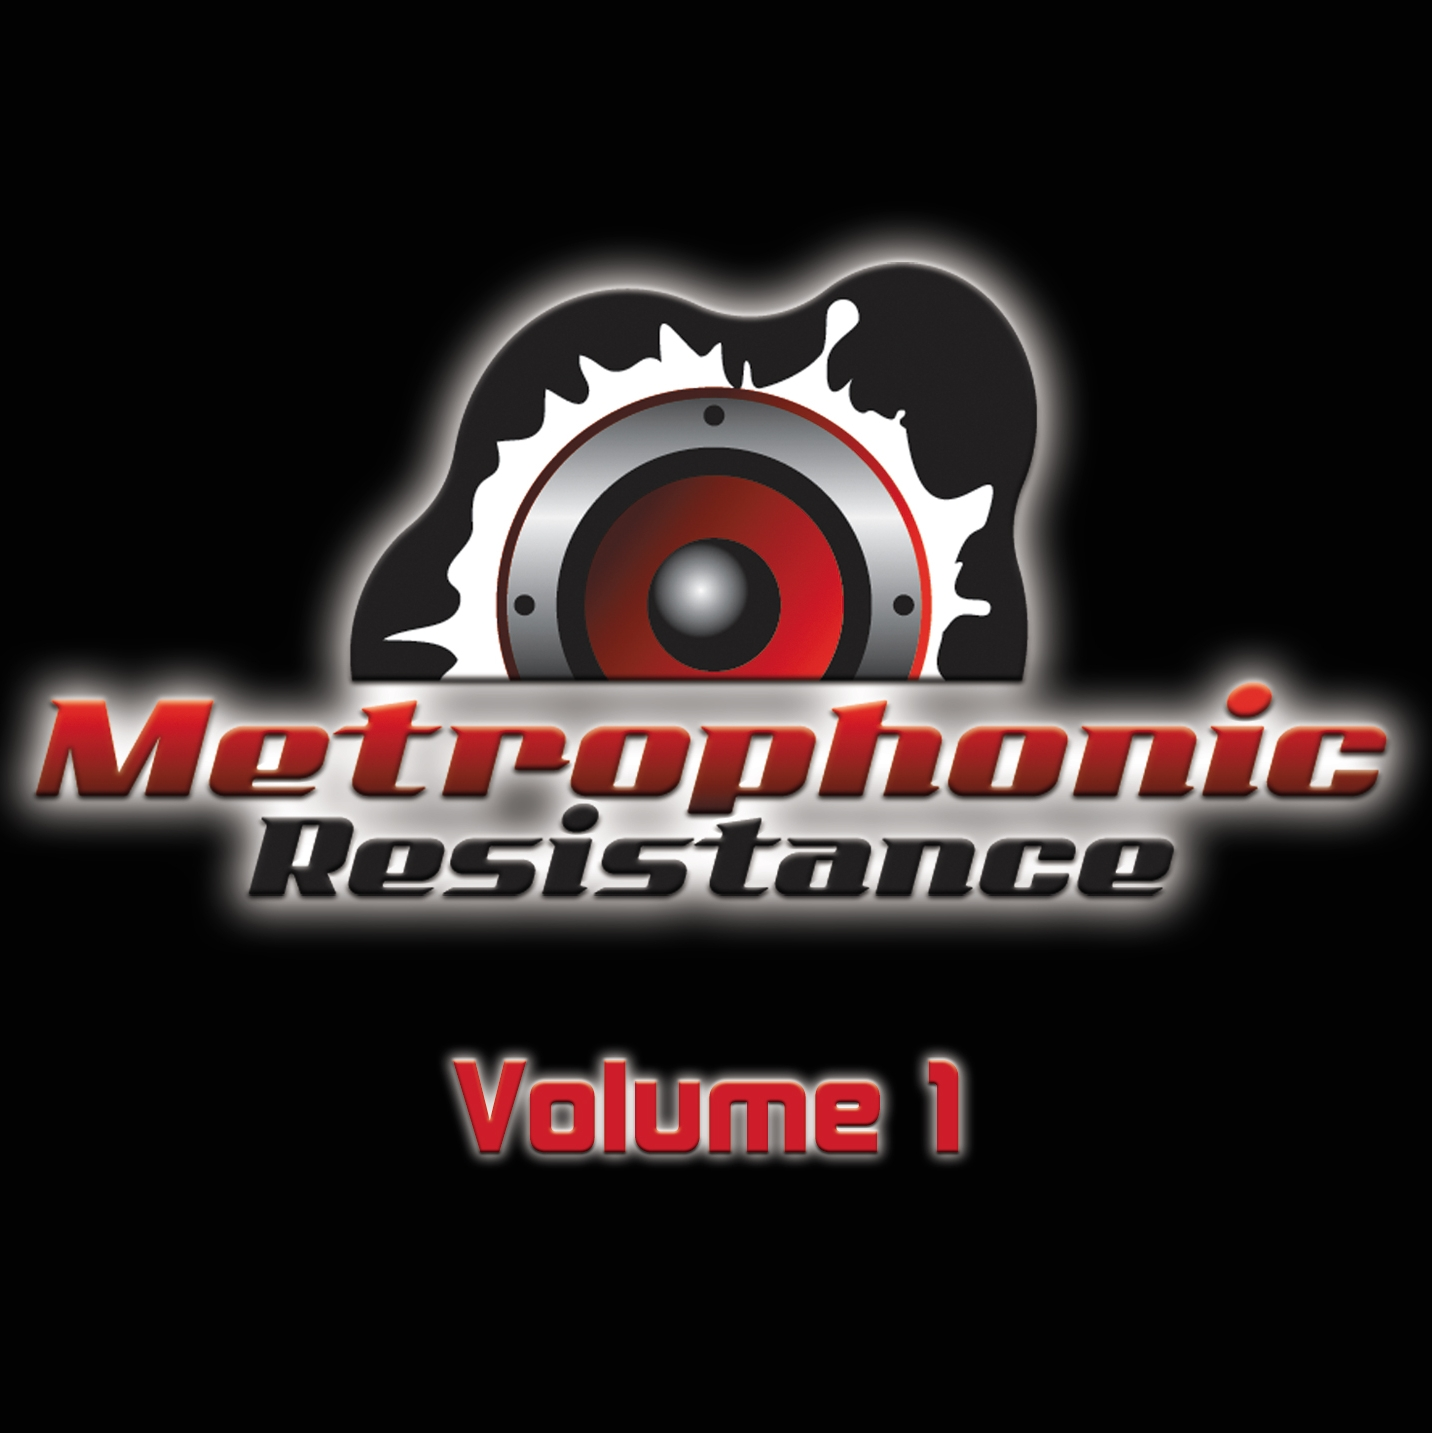 tl_files/images/releases/Metrophonic Resistance Vol. 1 pure.jpg